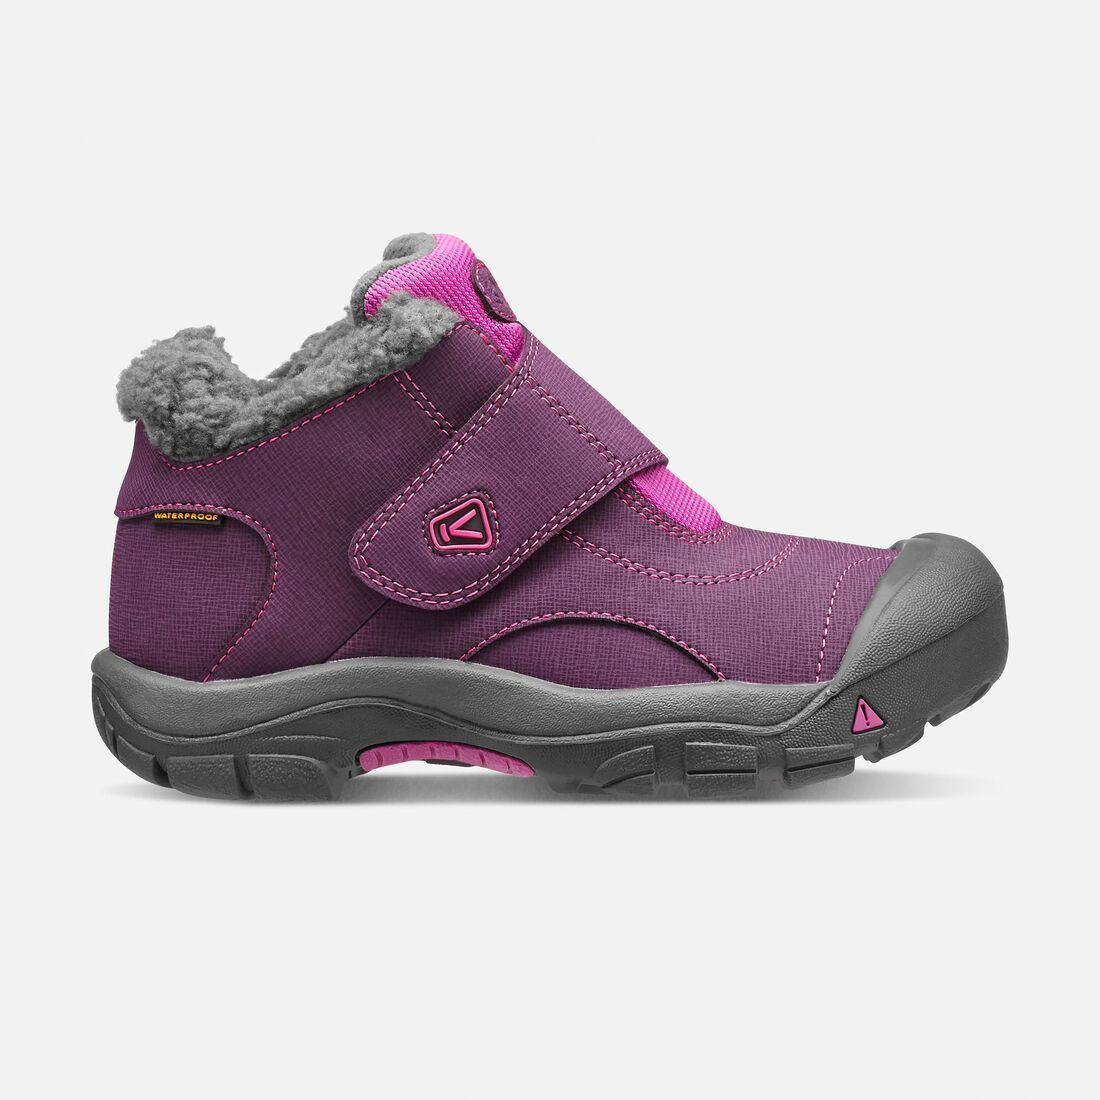 Little Kids' Kootenay Waterproof Boot in Wineberry/Dahlia Mauve - large view.